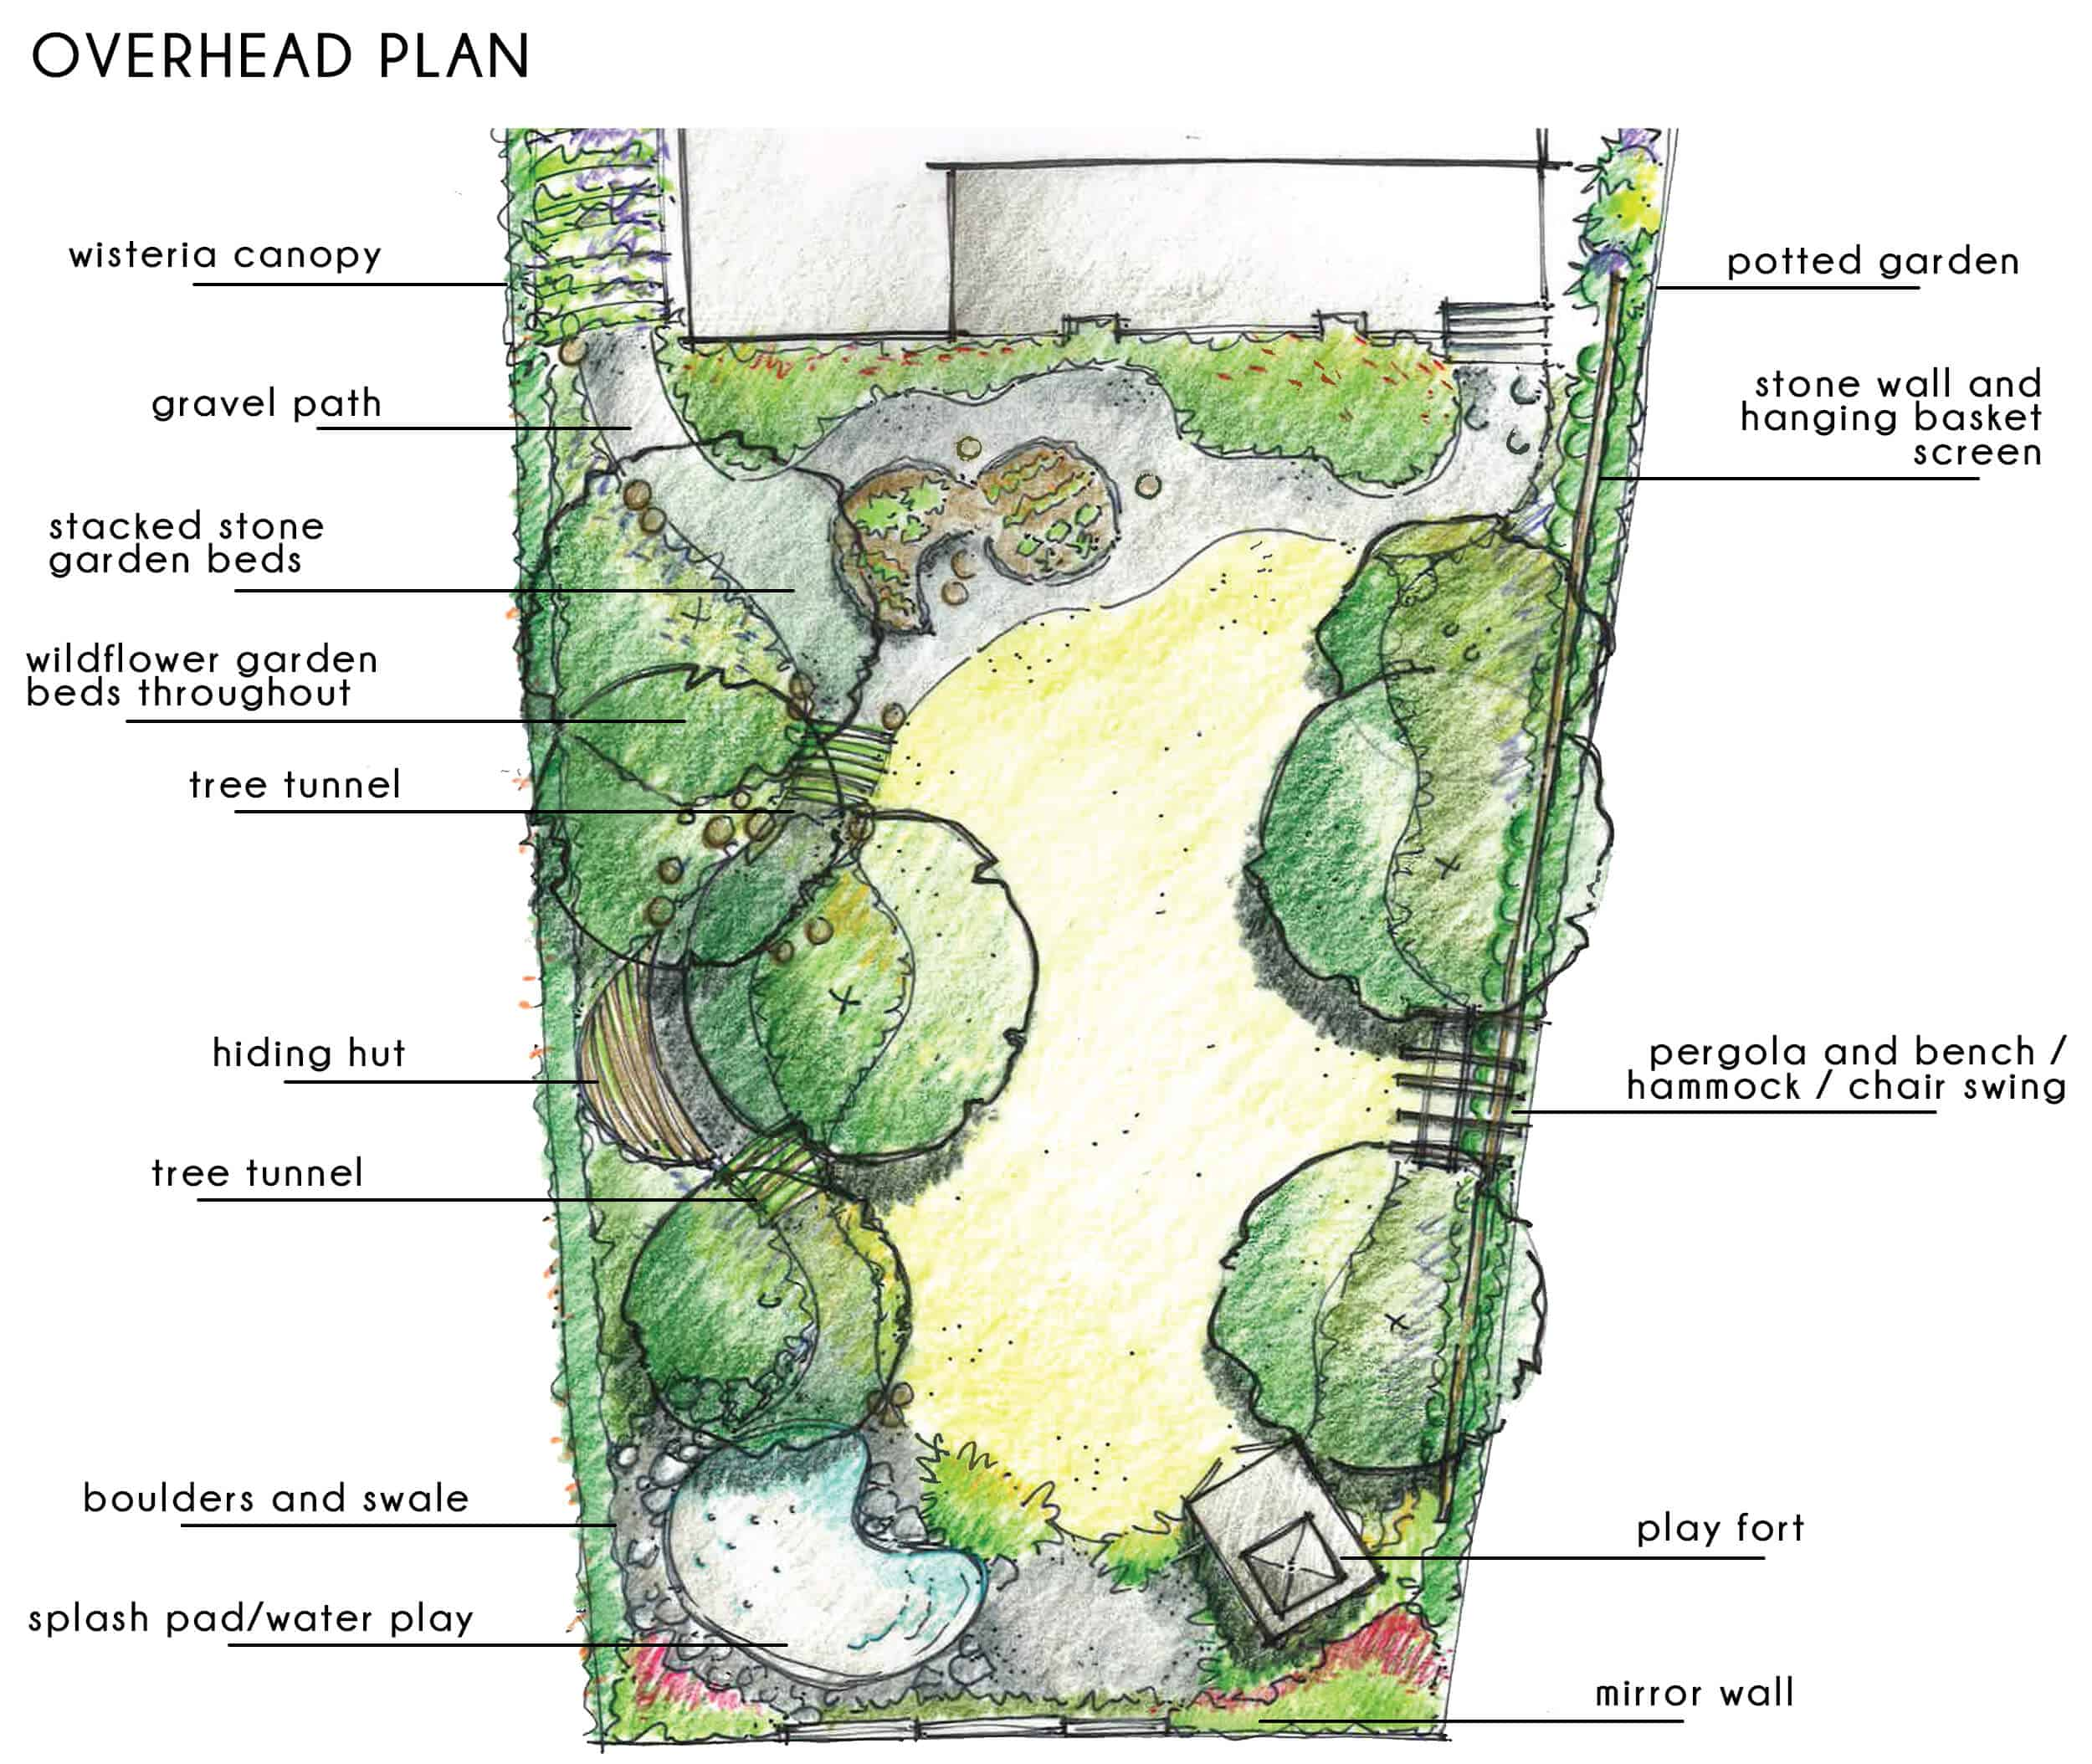 Emily-Henderson_Waverly_Modern-English-Cottage_Backyard_Plan-From-Gardener_Overhead-Plan